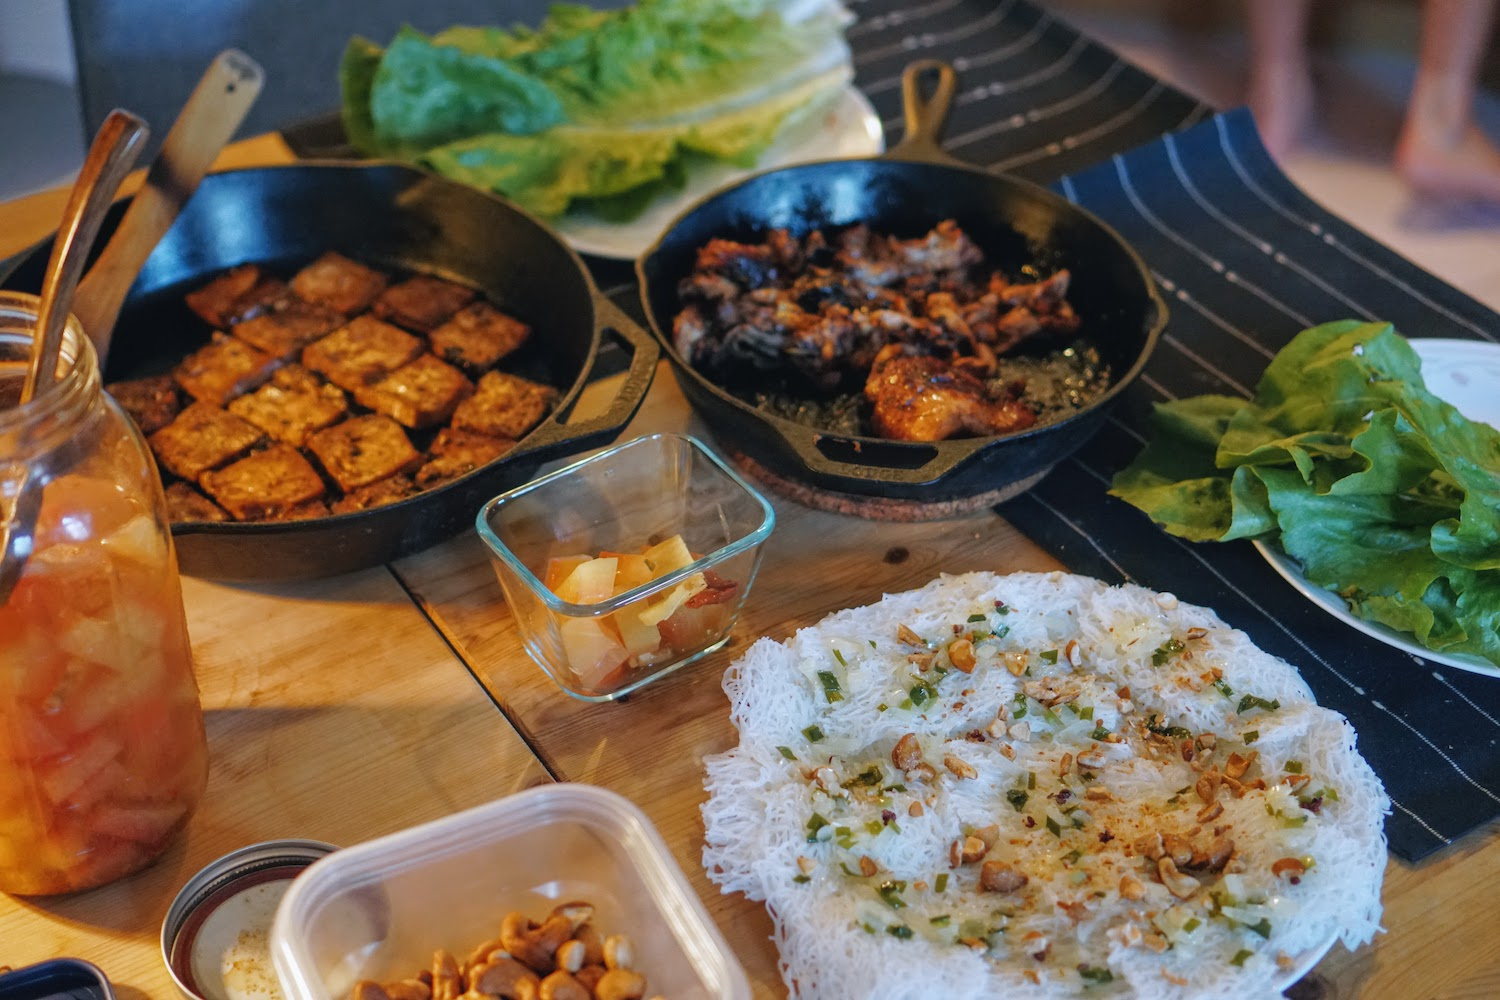 Multiple plates on a table including vermicelli, grilled chicken and tofu